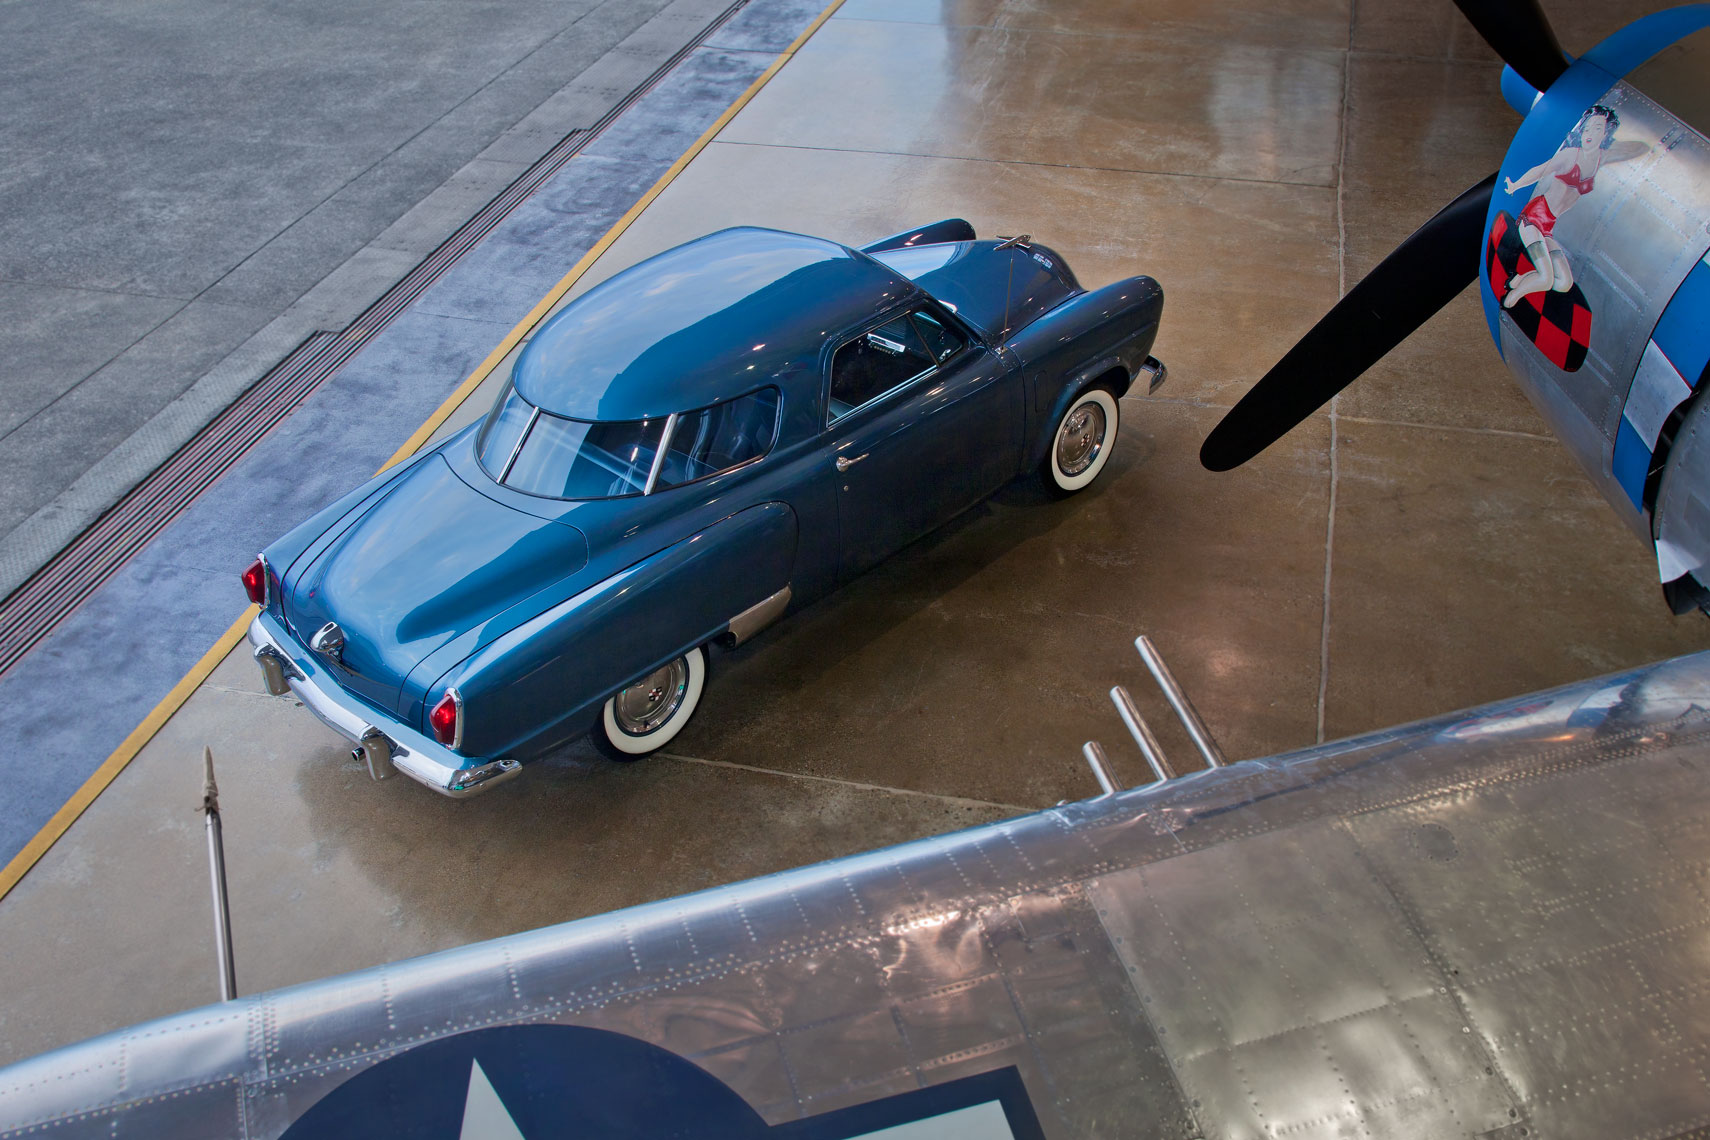 MCraft_51Studebaker-4939_RearView_Final.jpg